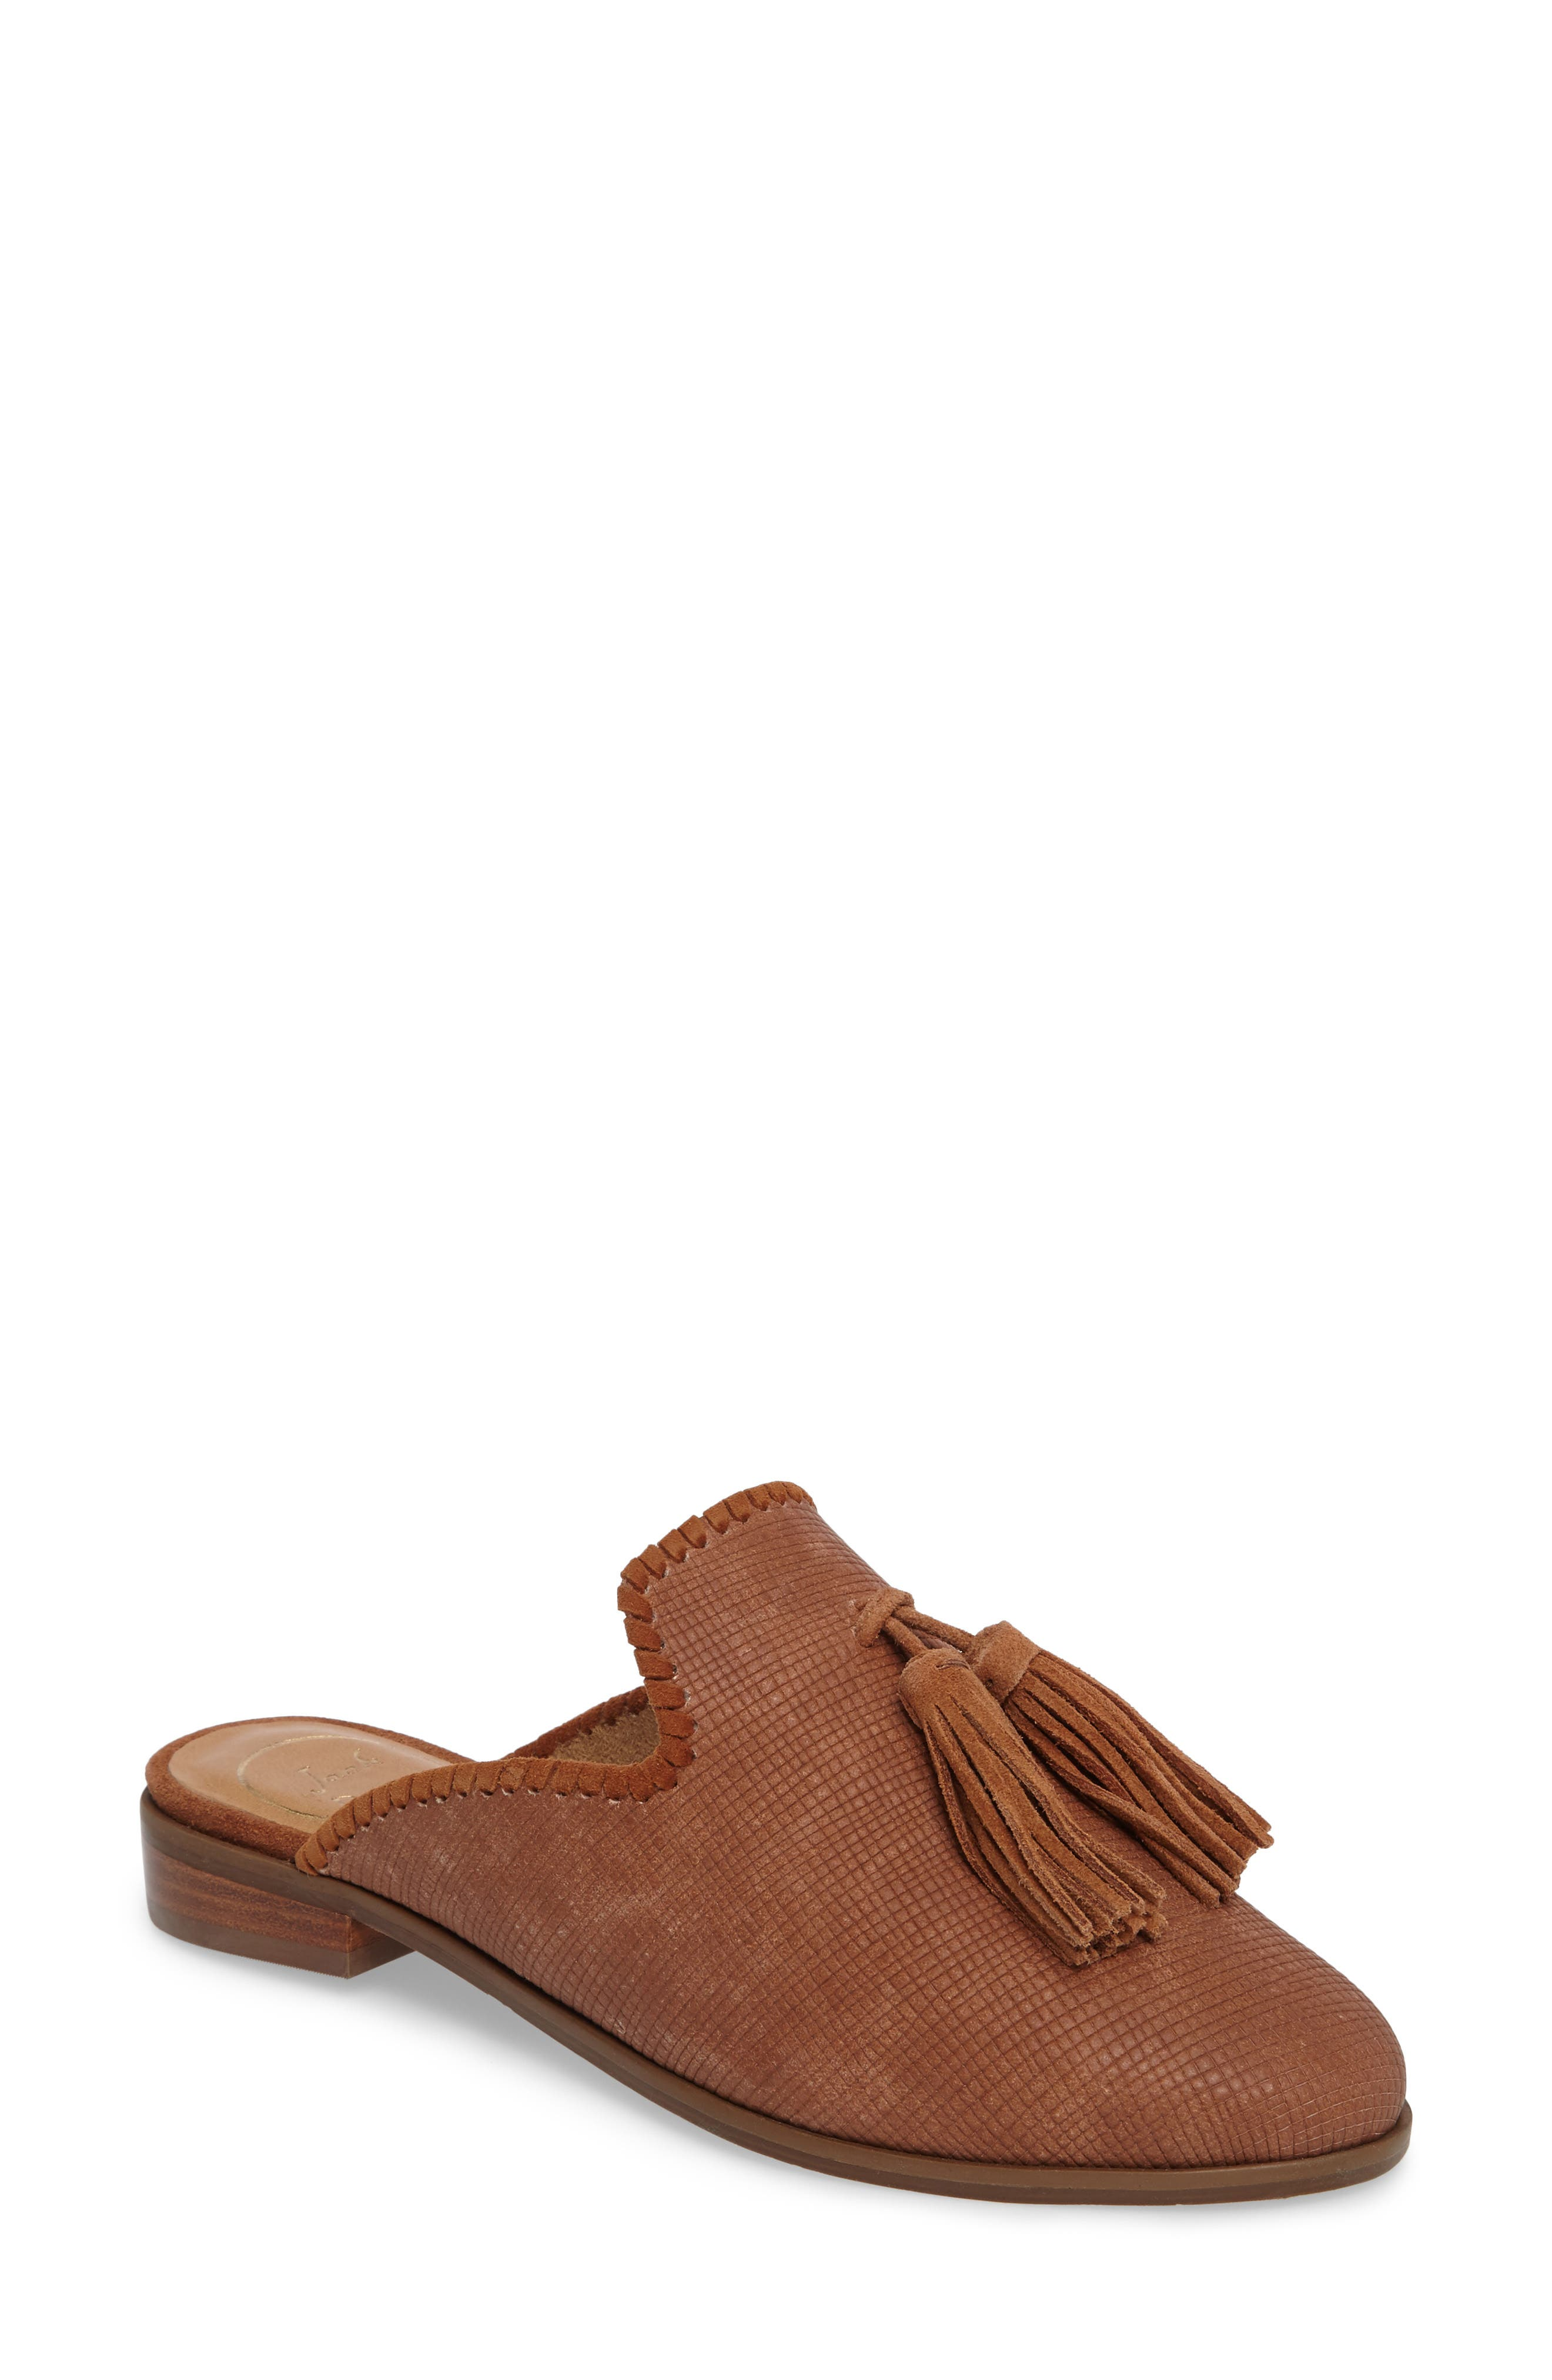 Delaney Tassel Mule,                             Main thumbnail 2, color,